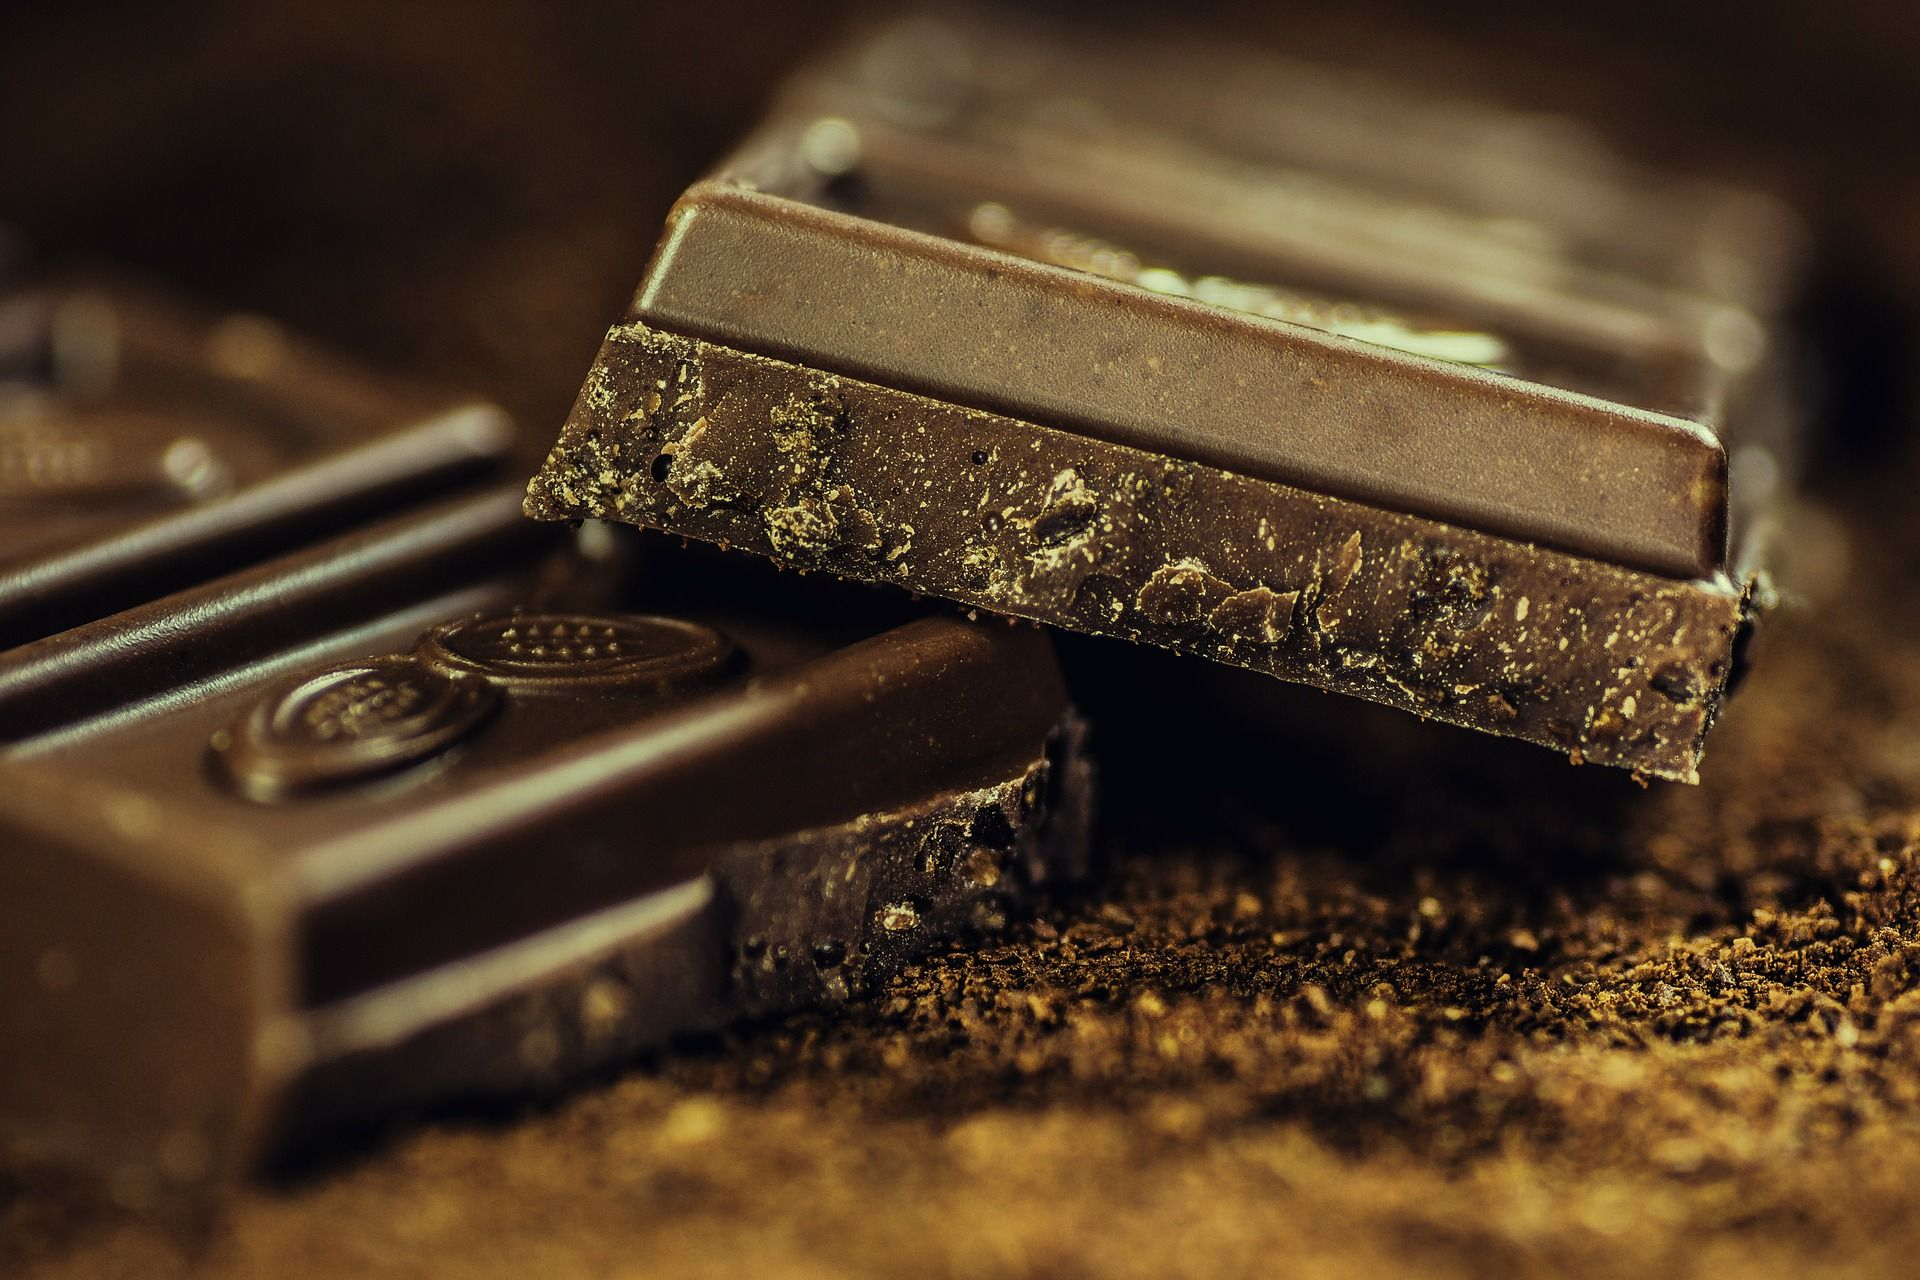 Chocolate is a delicacy across the globe. Everything is better with chocolate.